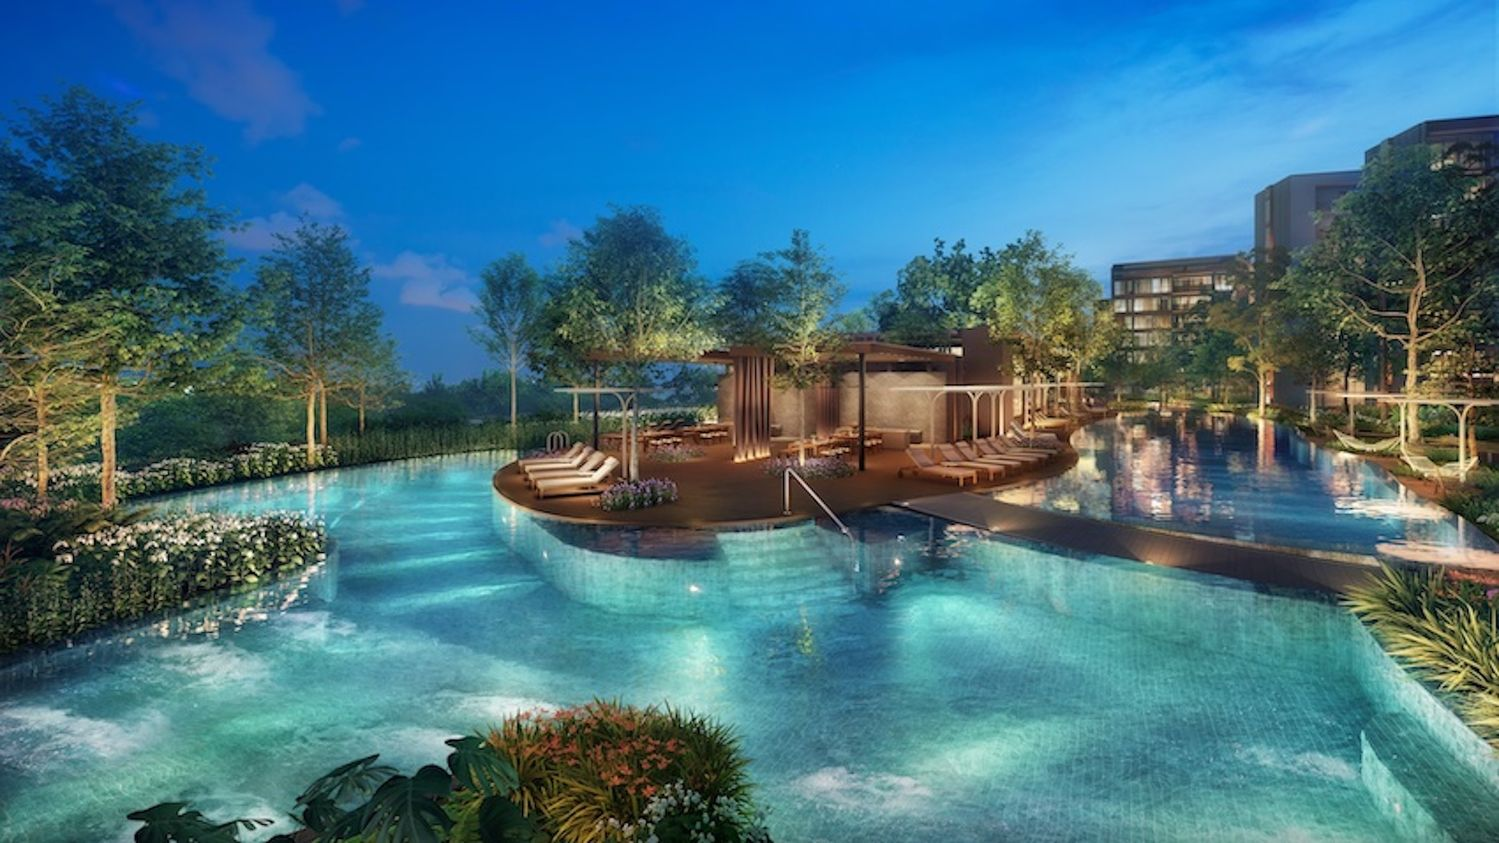 Artist's impression of the jacuzzi lounge - EDGEPROP SINGAPORE